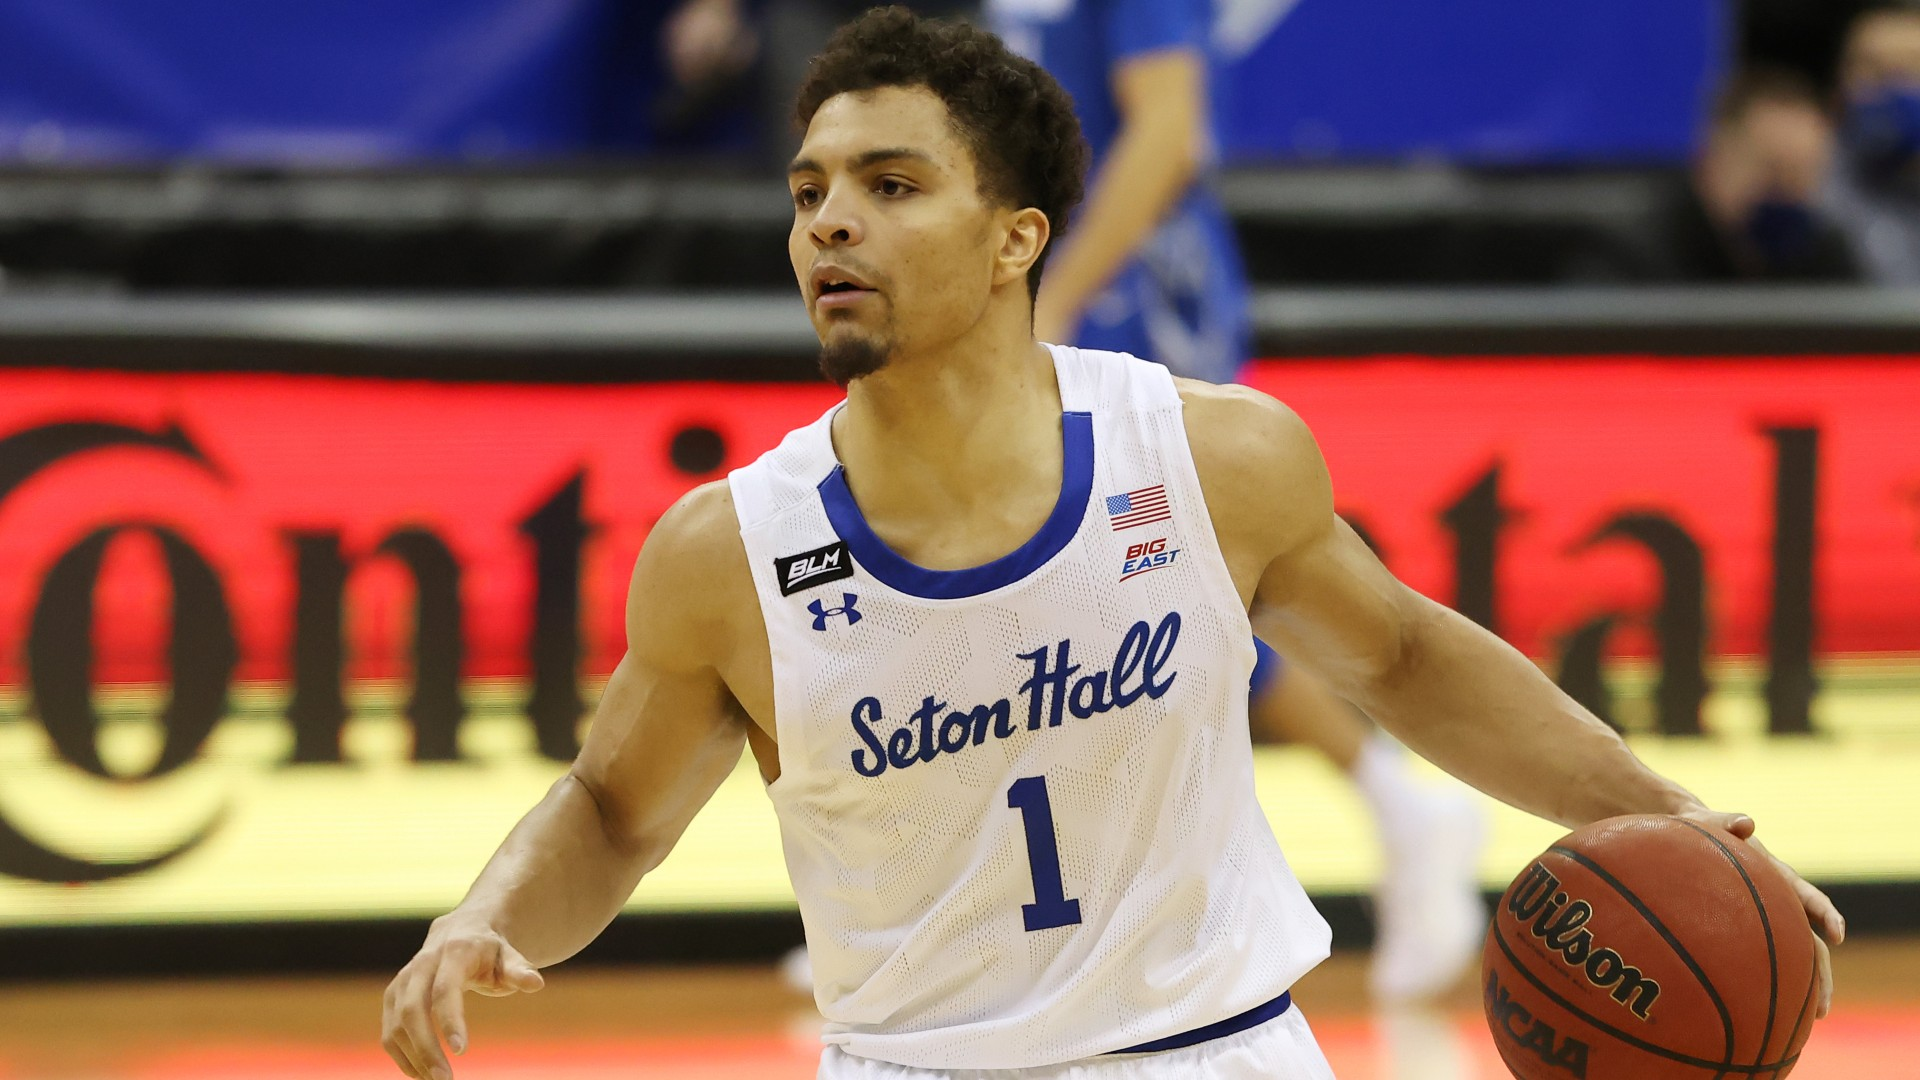 Seton Hall's Bryce Aiken boasts he 'ain't never missing' a free throw, promptly misses two